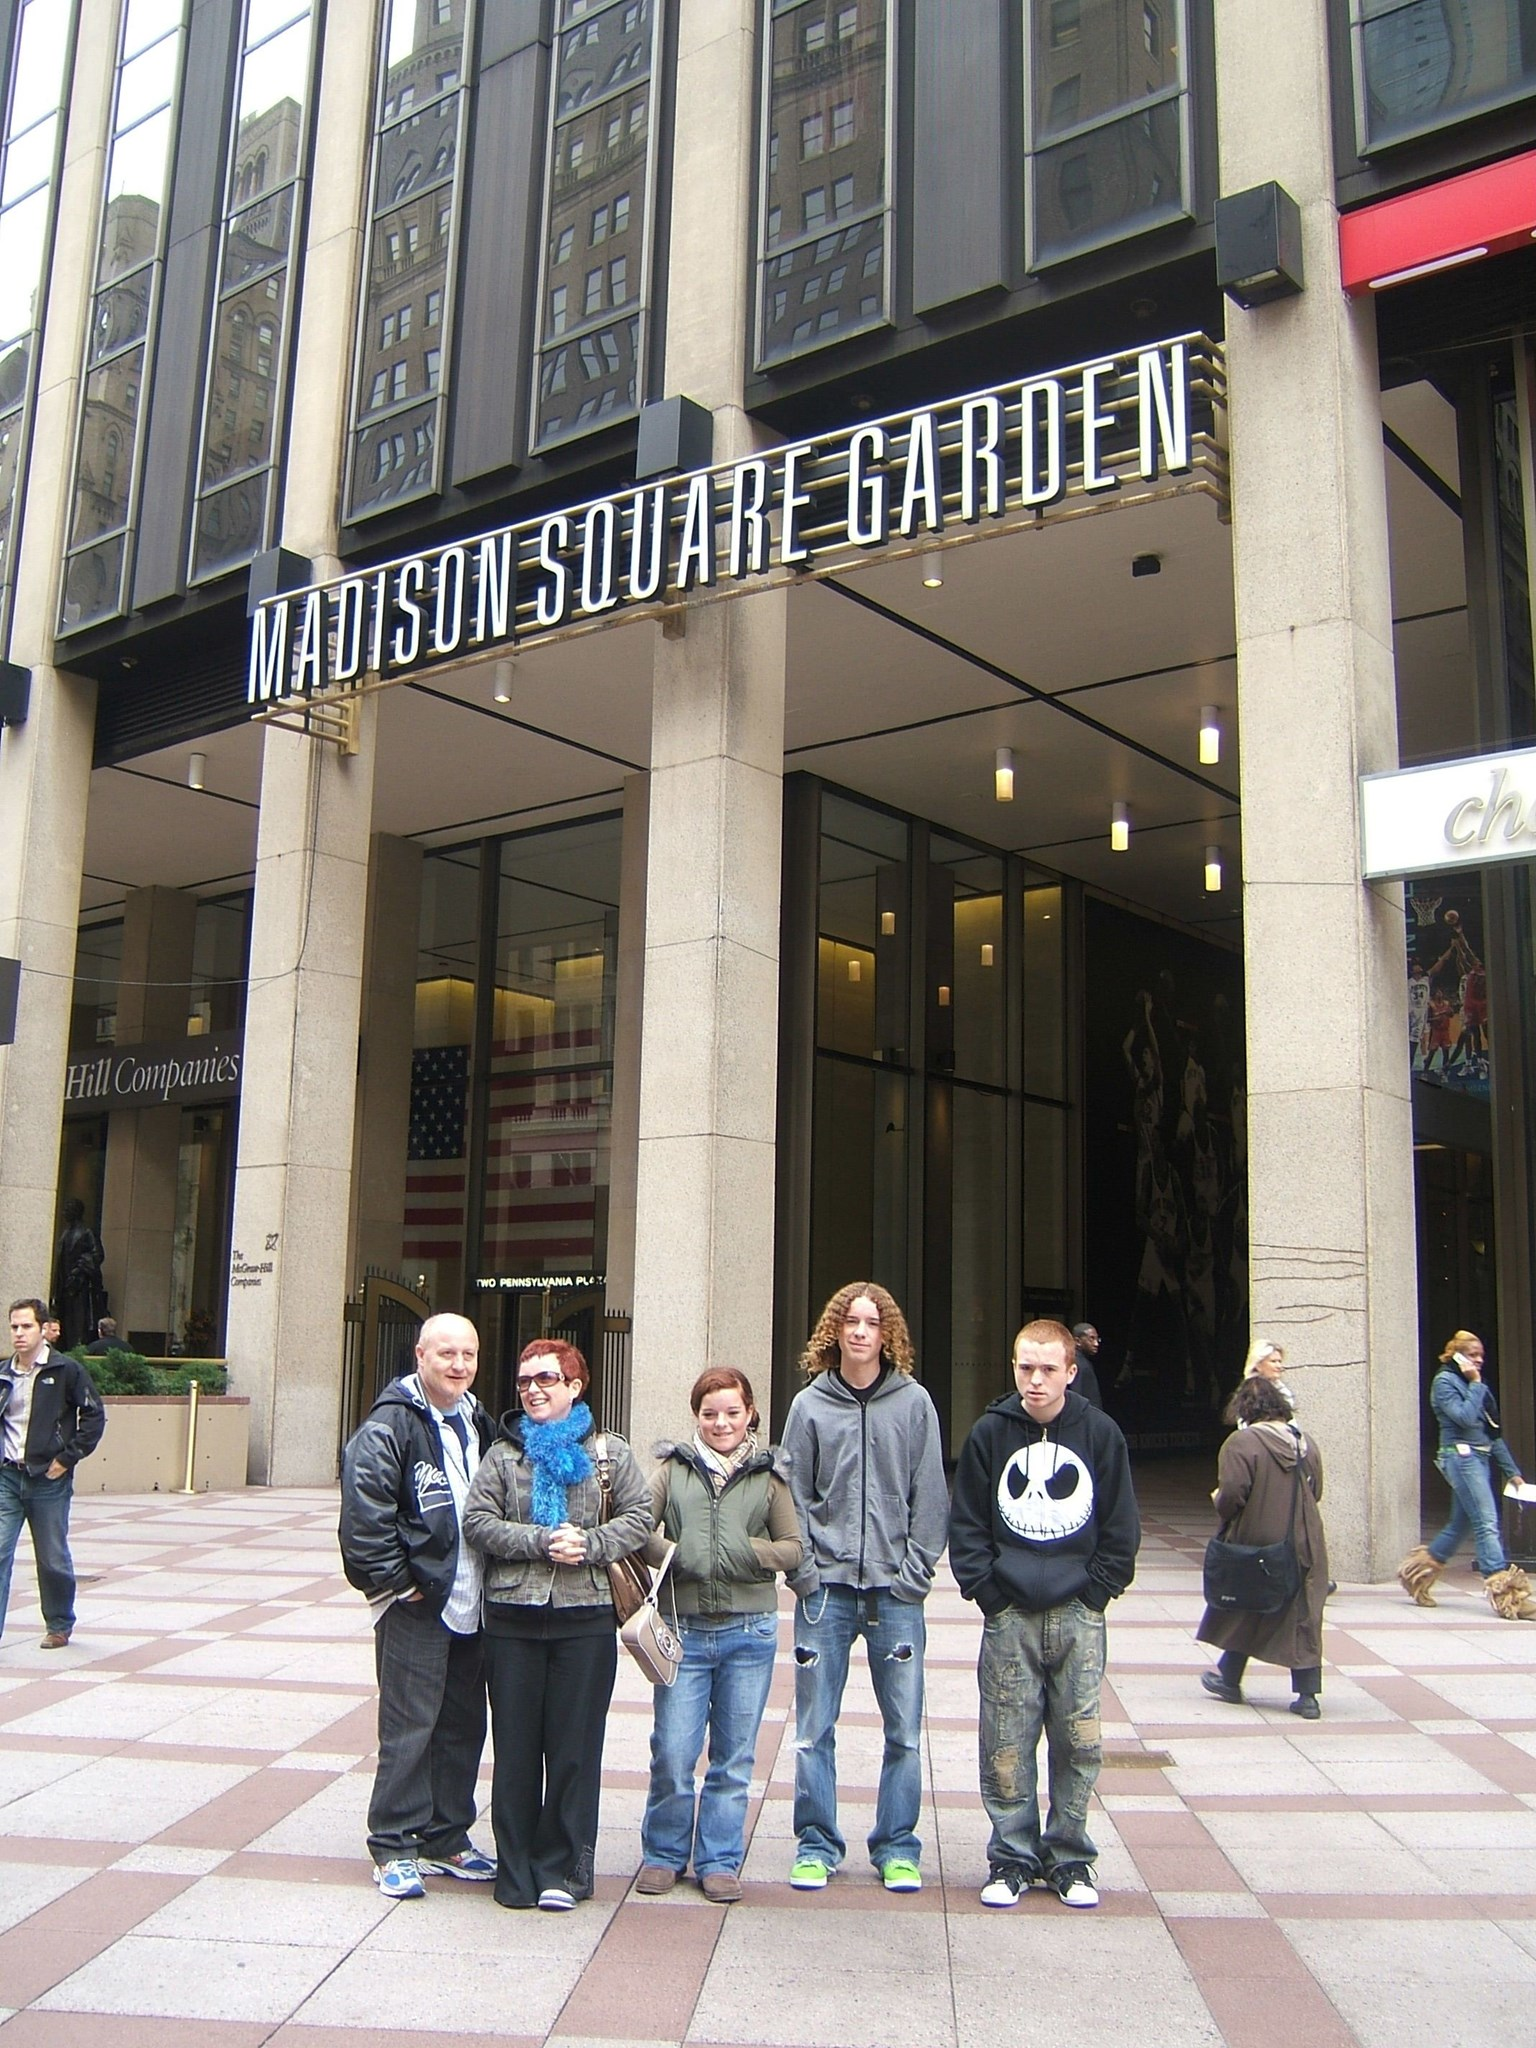 Madison Square Garden   October 2006